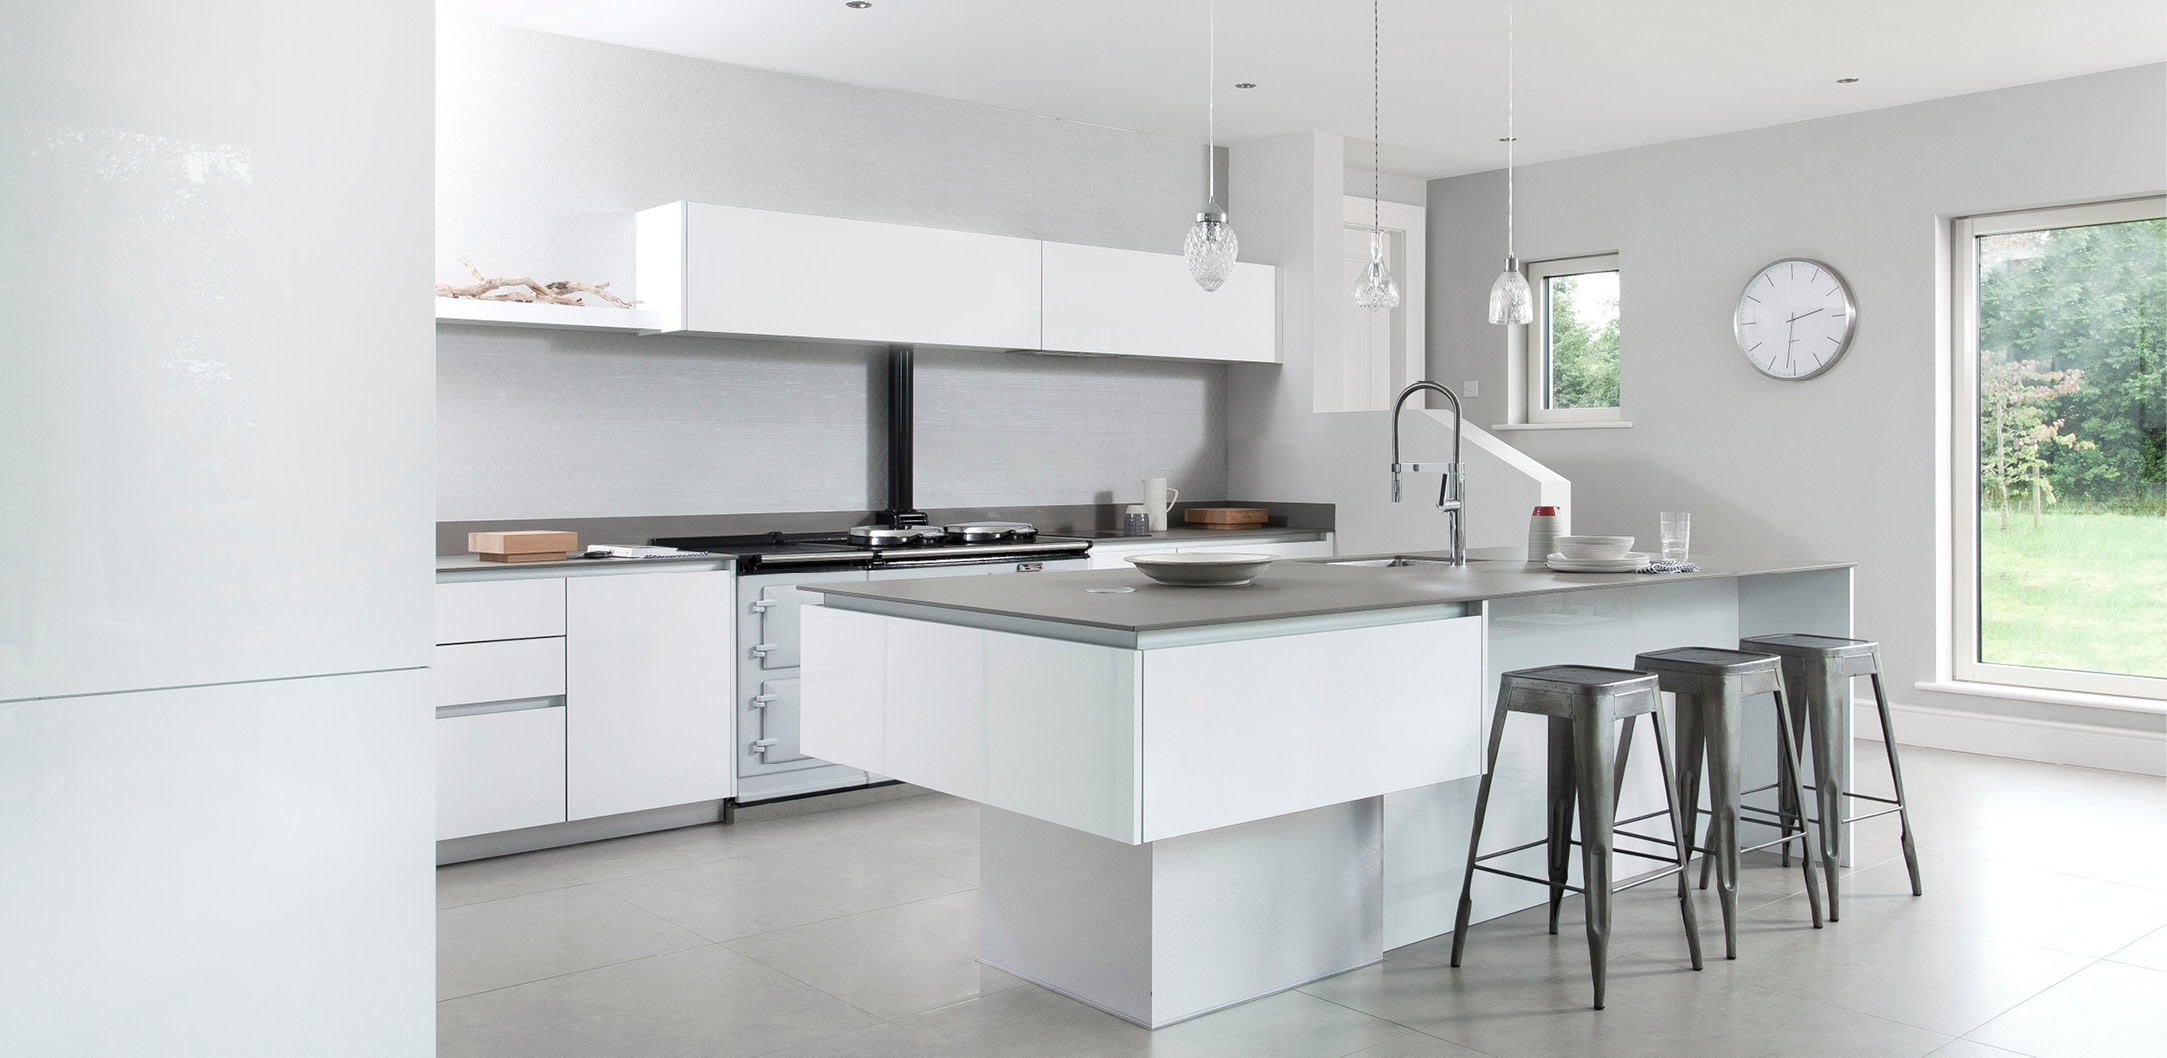 Greenhill kitchens county tyrone northern ireland for Modern kitchen company